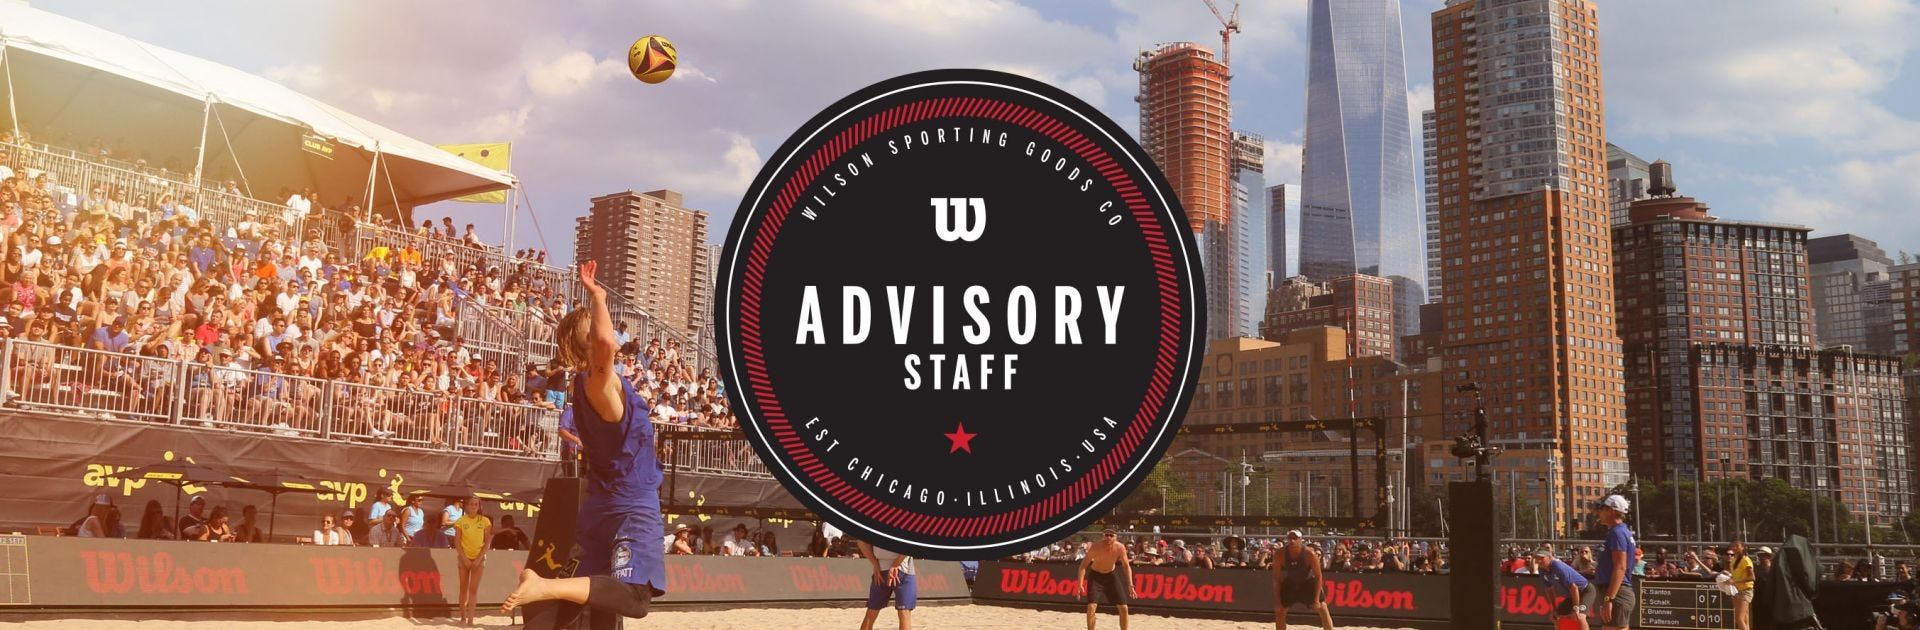 Advisory Staff Logo in foreground of beach volleyball court